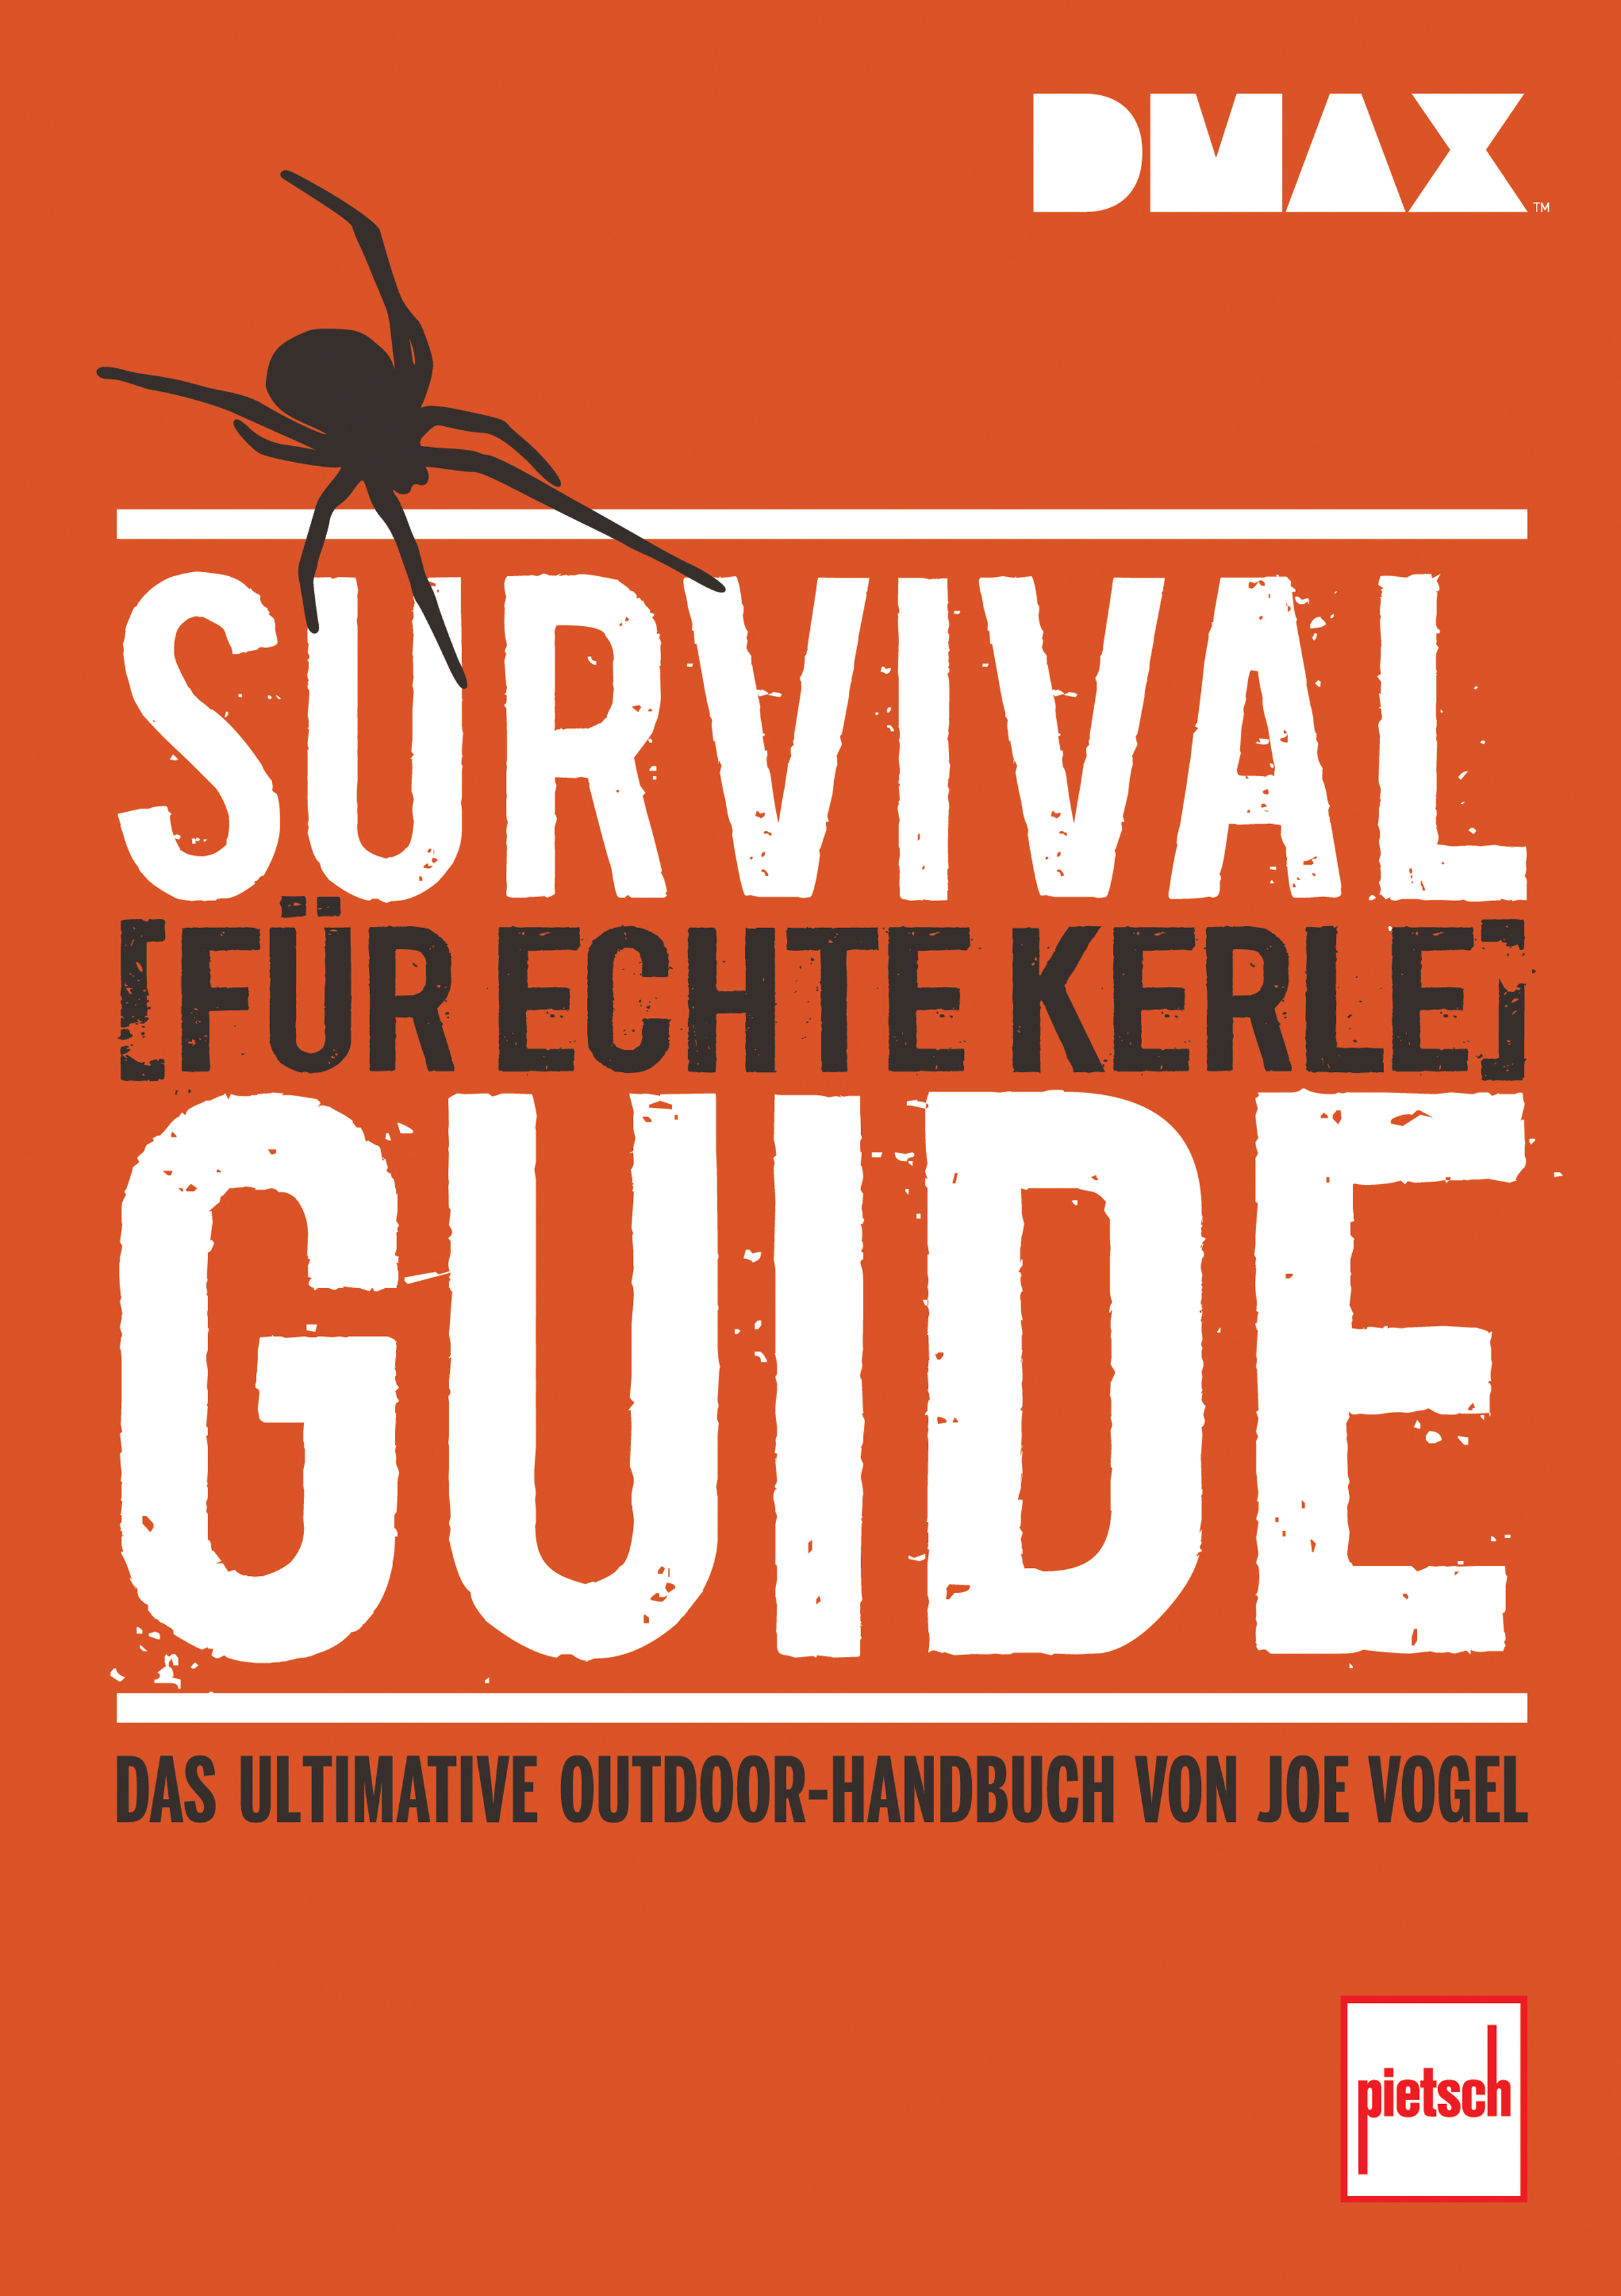 Johannes Vogel DMAX Survival-Guide für echte Kerle survival guide